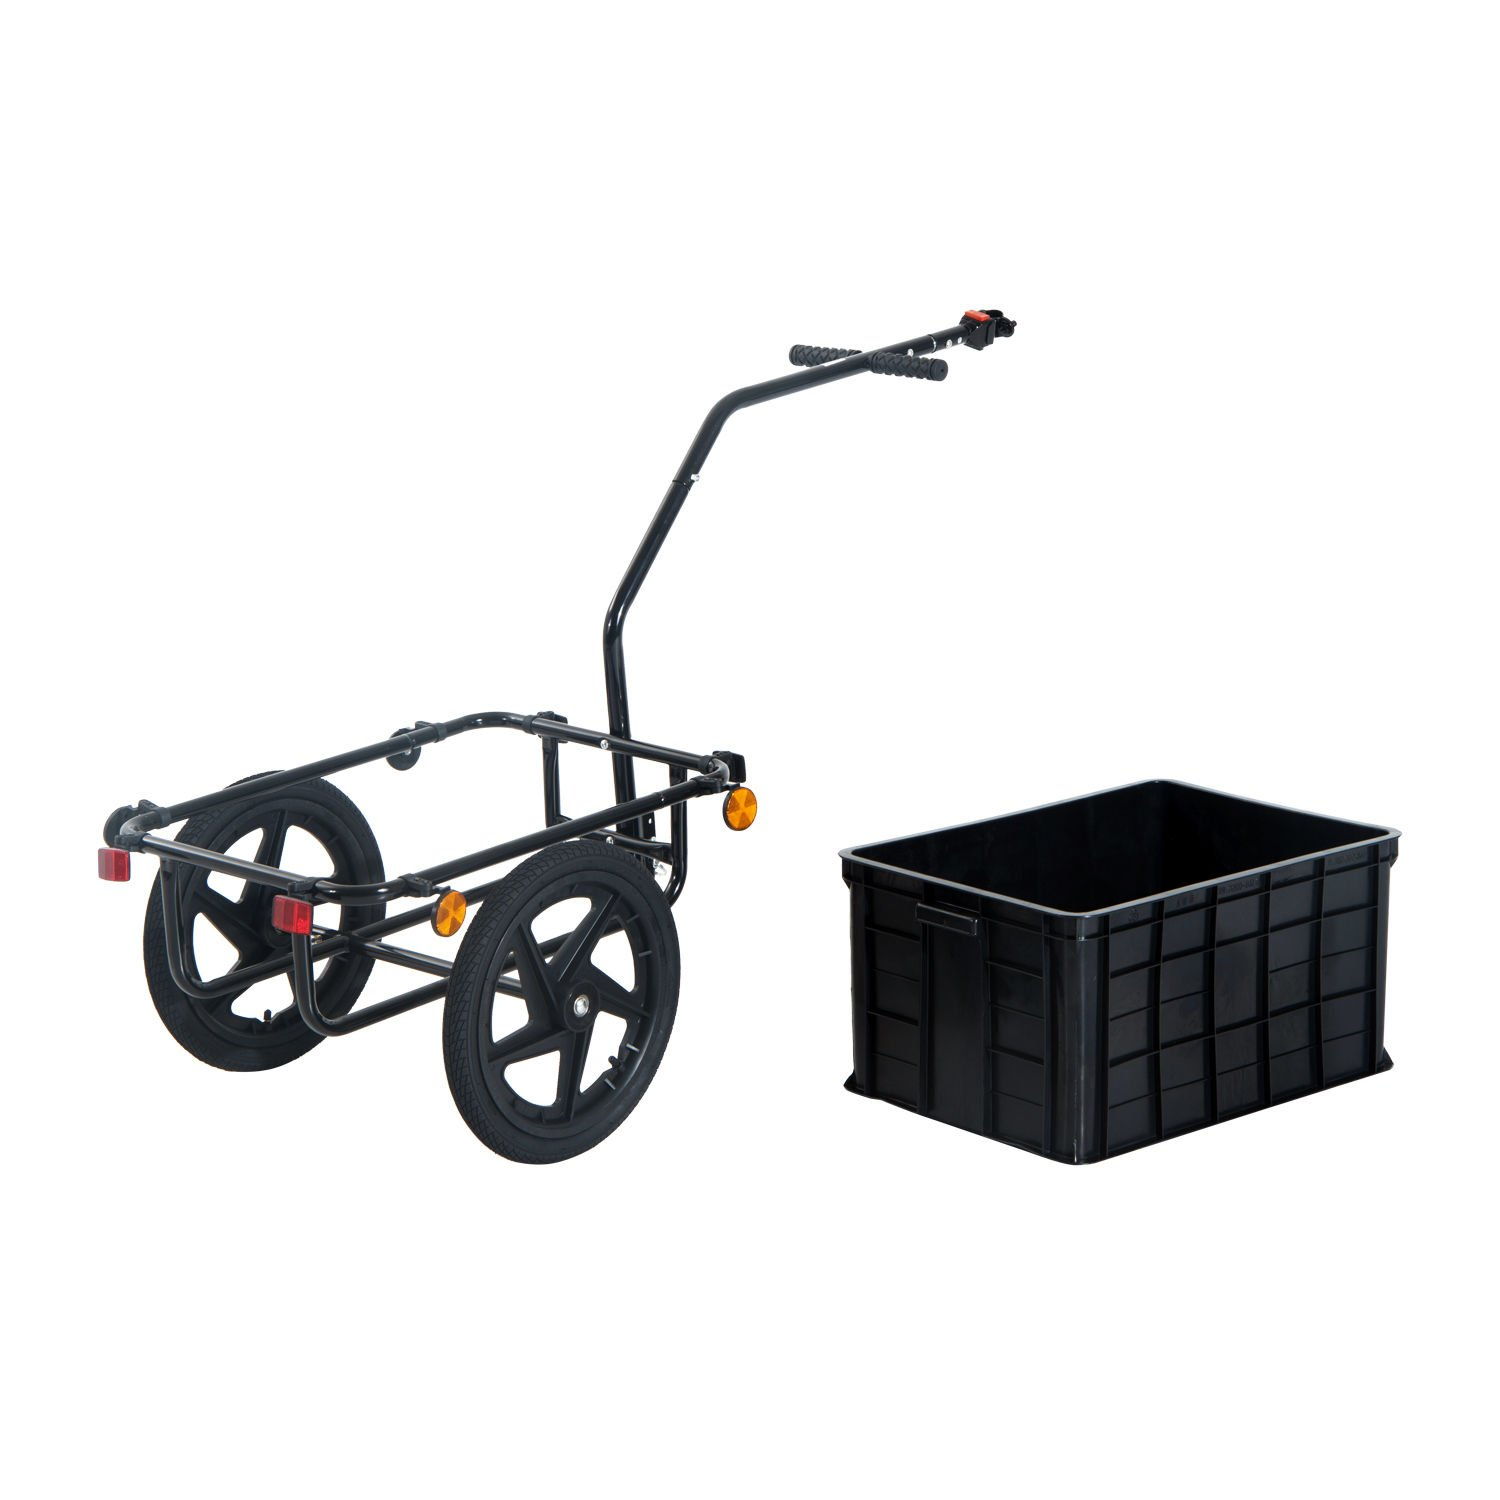 Aosom Enclosed Bicycle Cargo Trailer - Black by Aosom (Image #3)